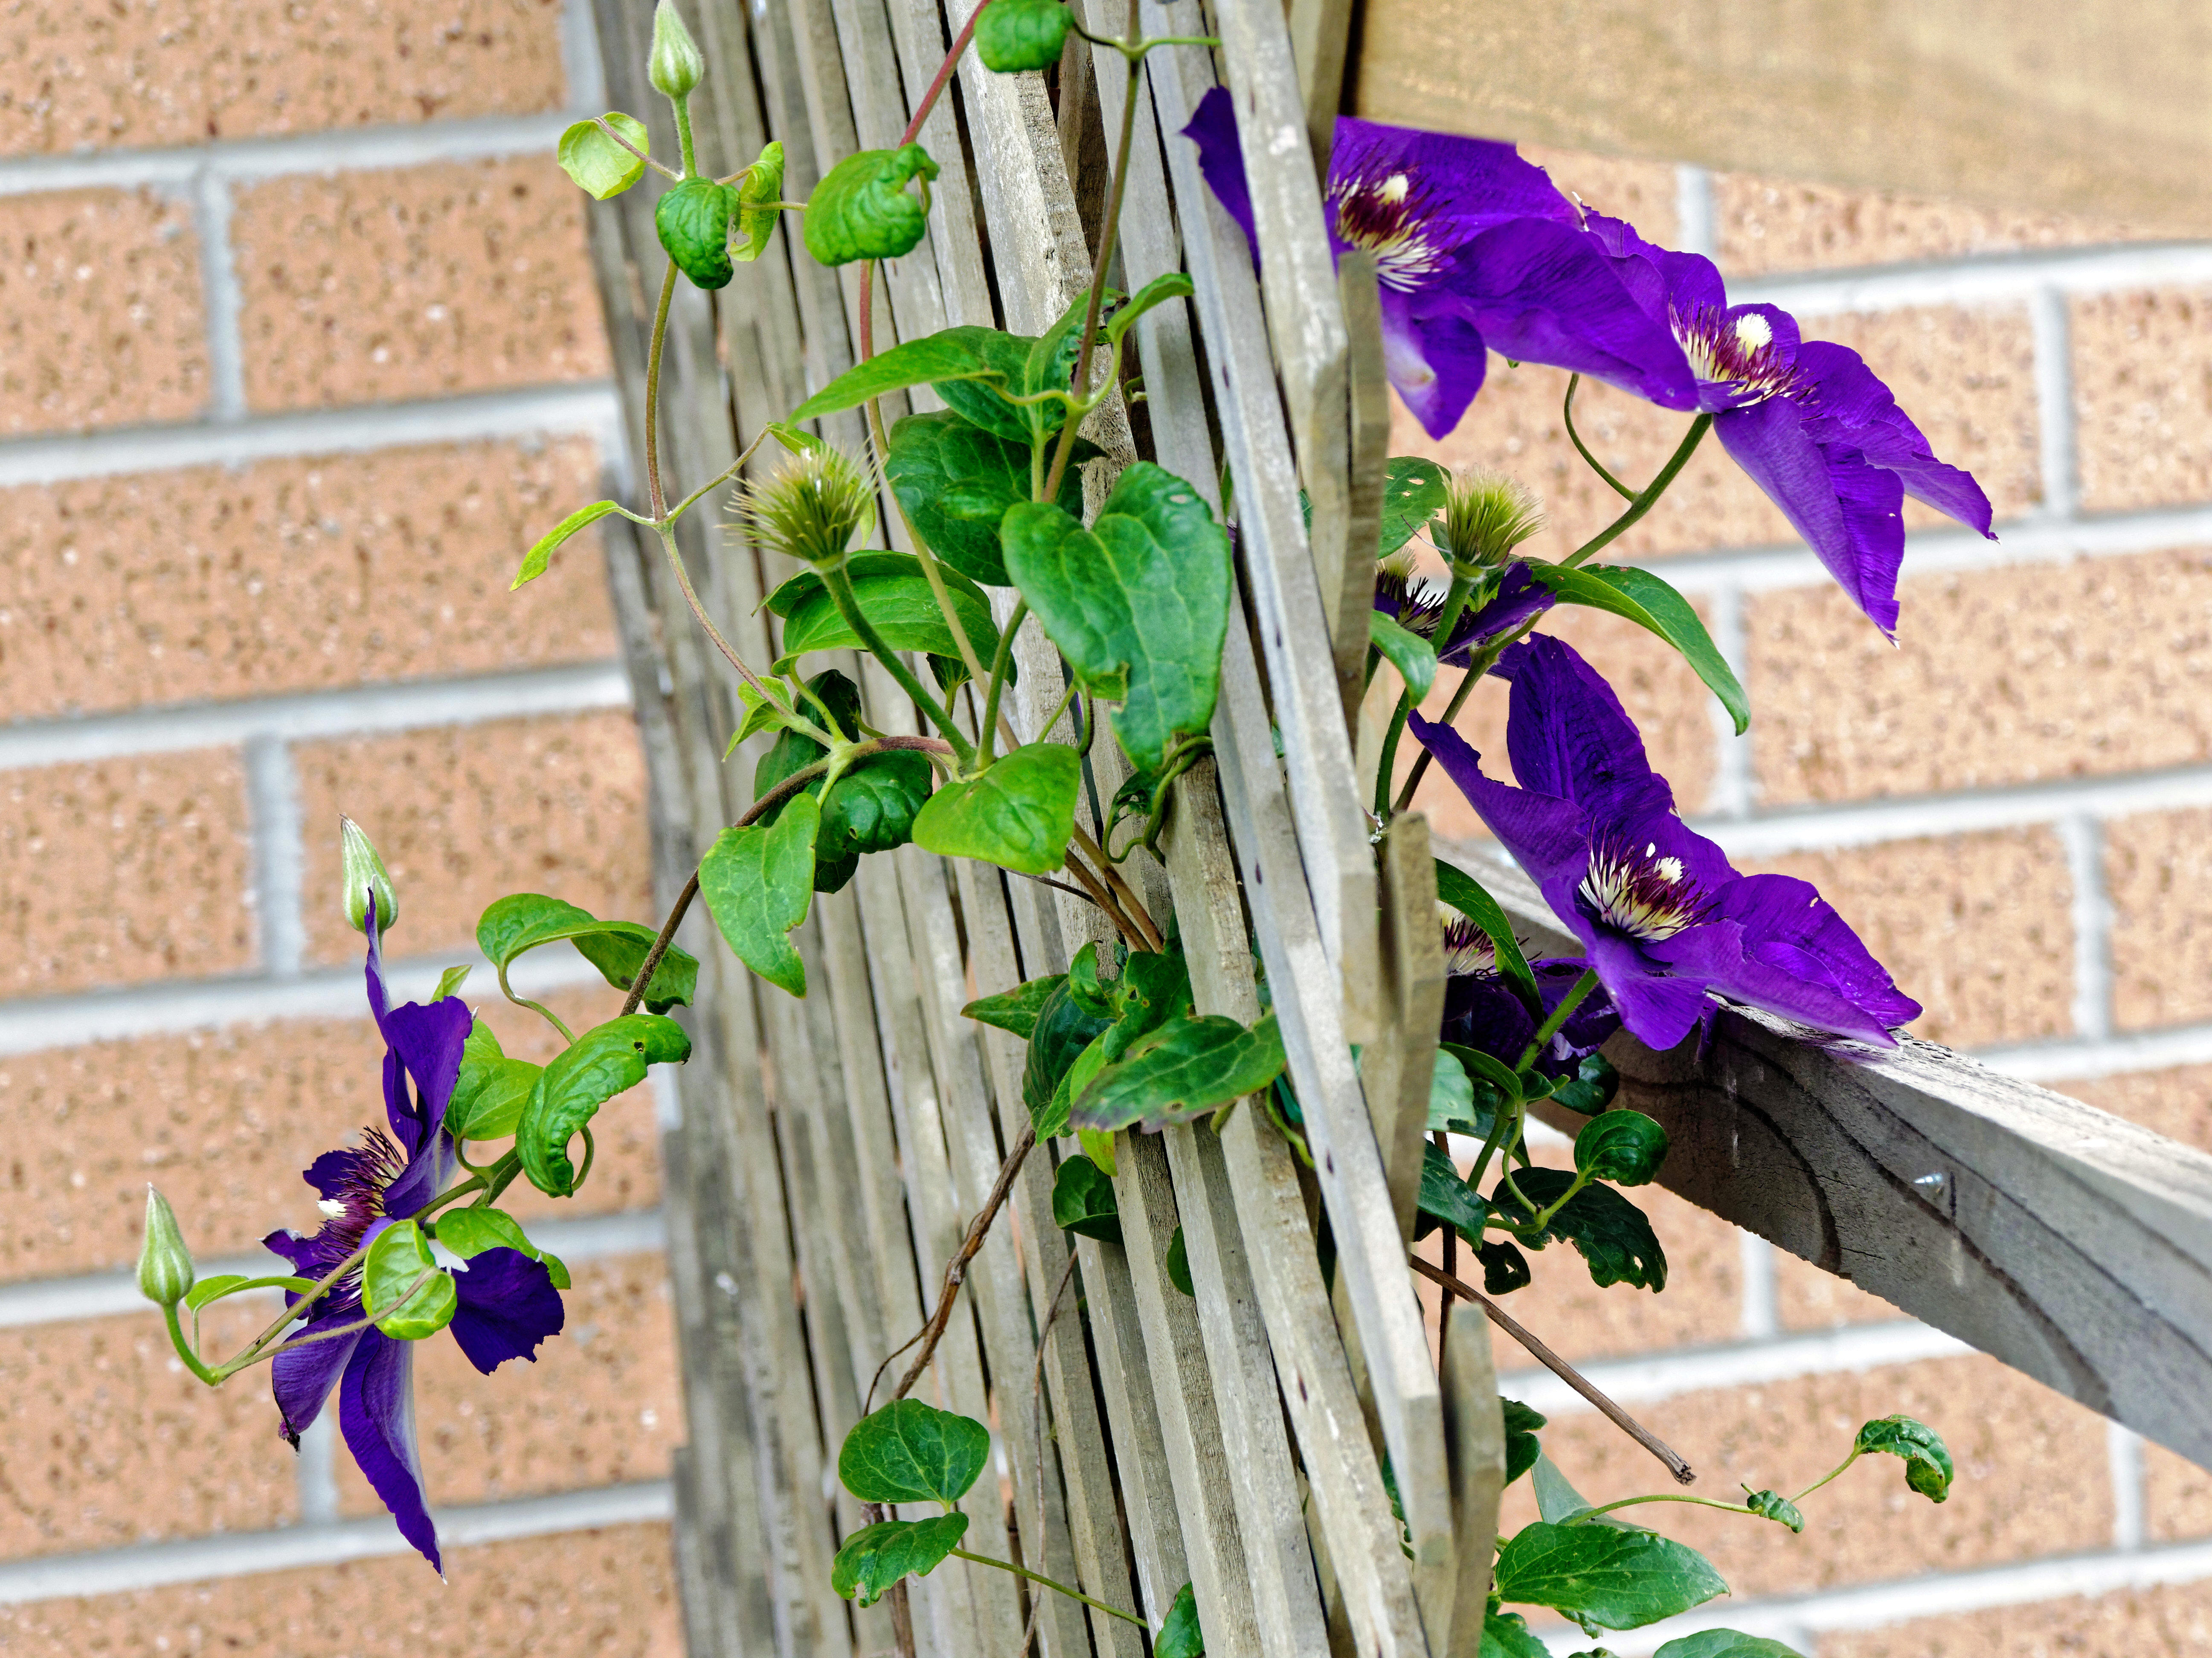 This should be Clematis-2.jpeg.  Is it missing?